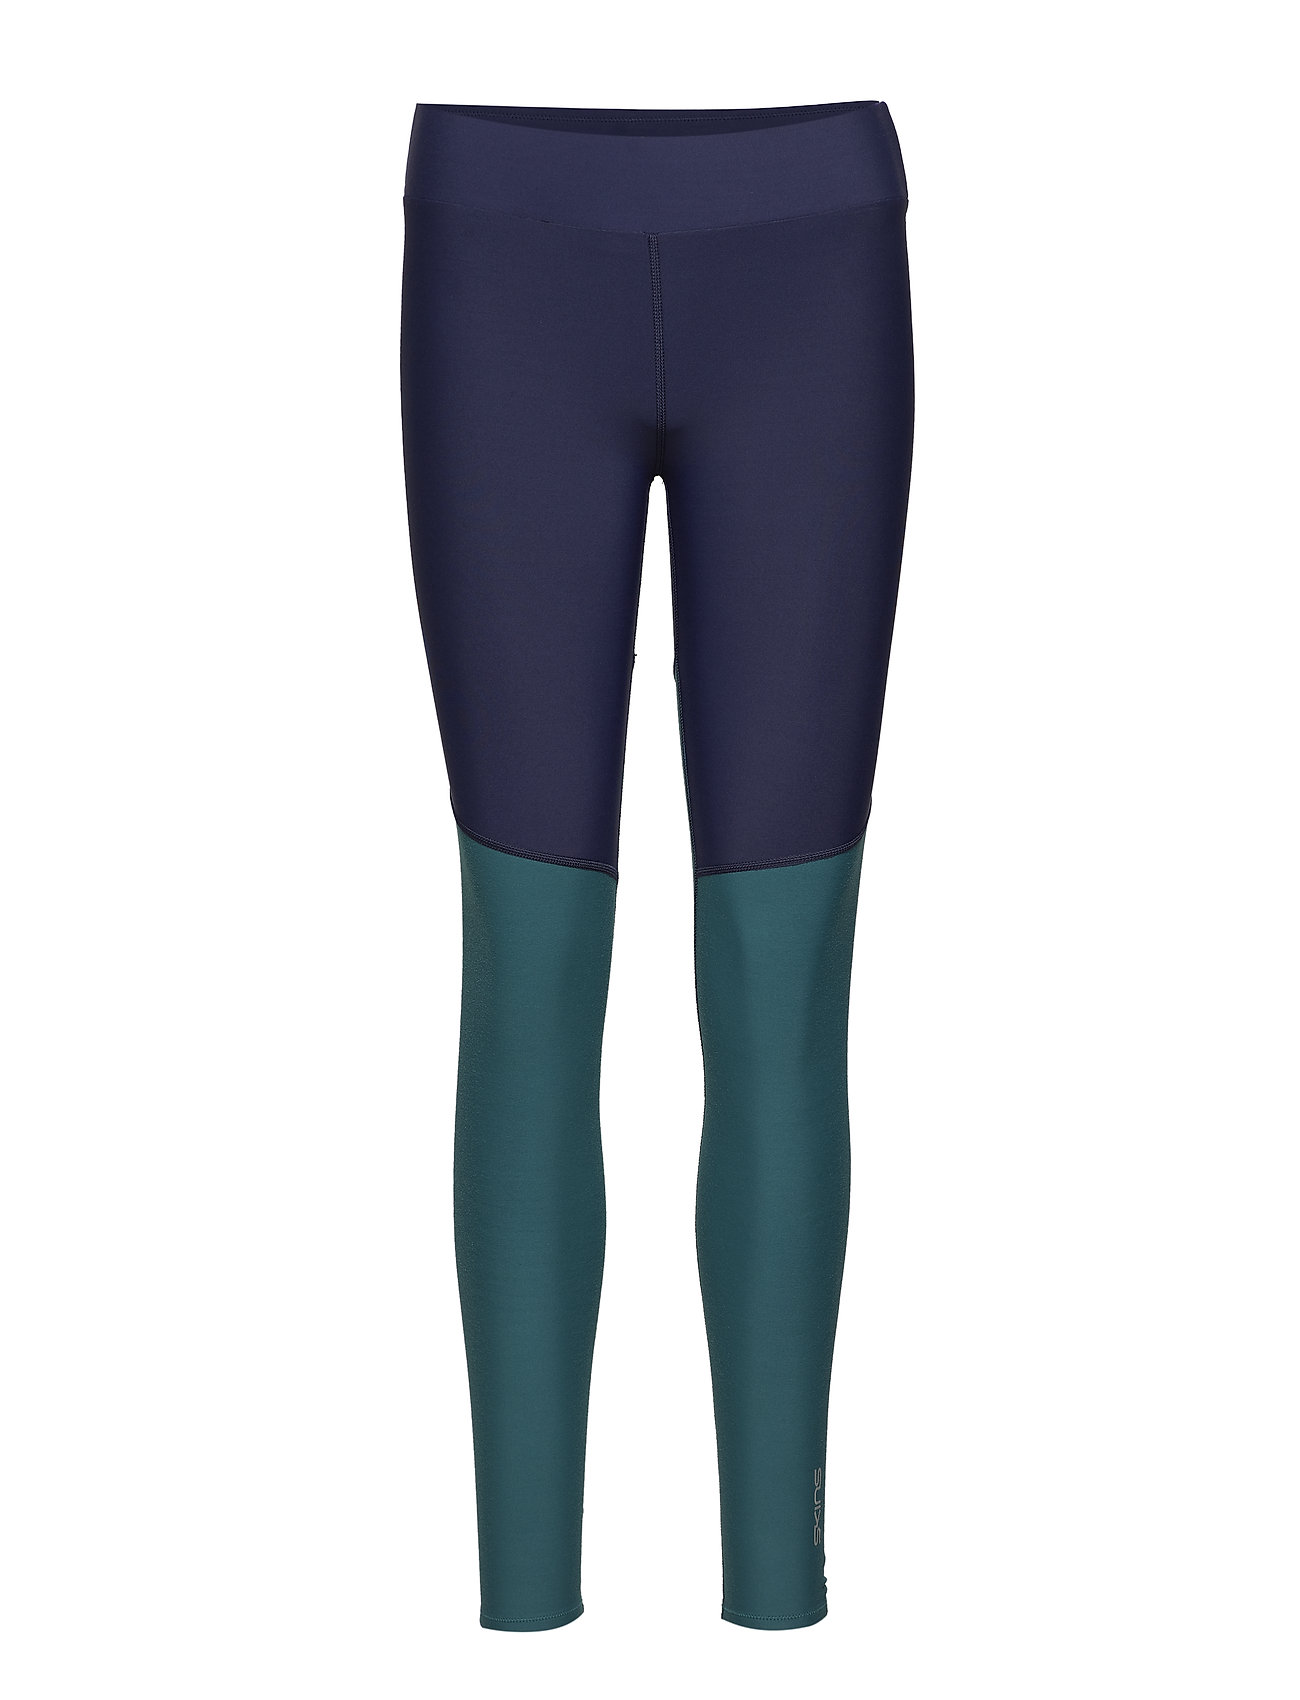 Skins DNAmic Soft Womens Long Tights - NAVY BLUE/DEEP TEAL